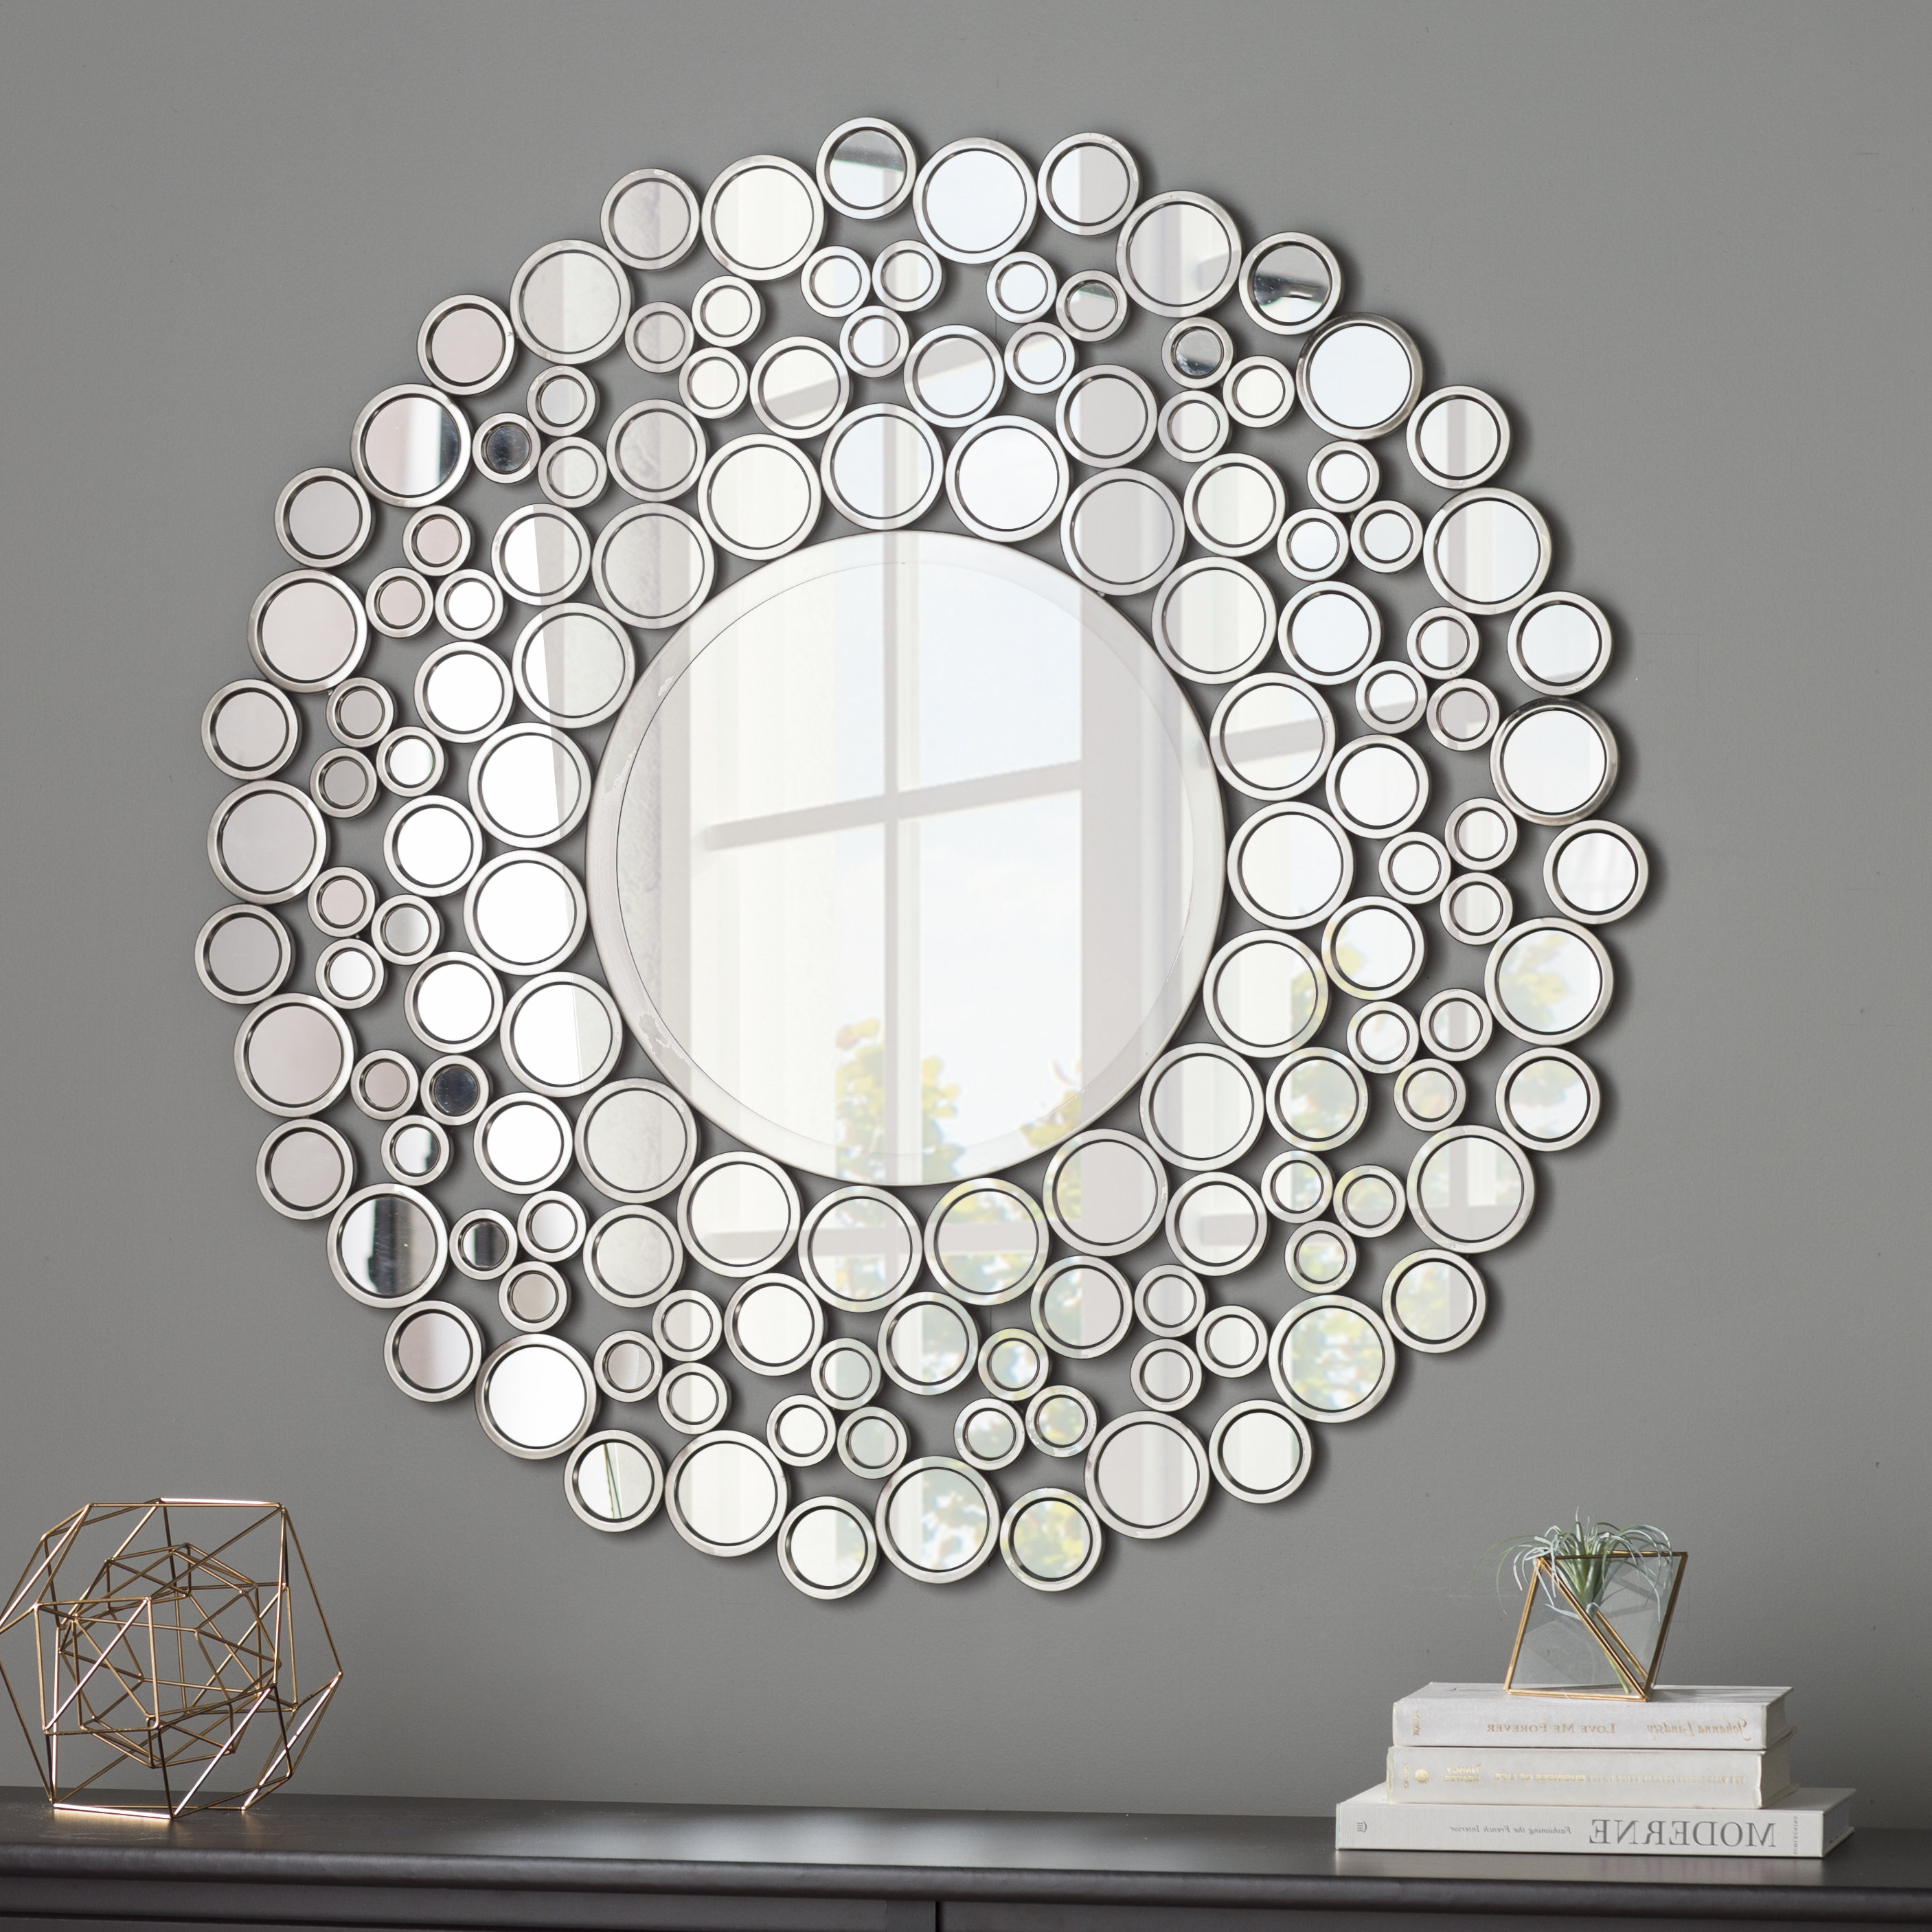 Kentwood Round Wall Mirror In Most Up To Date Kentwood Round Wall Mirrors (View 8 of 20)